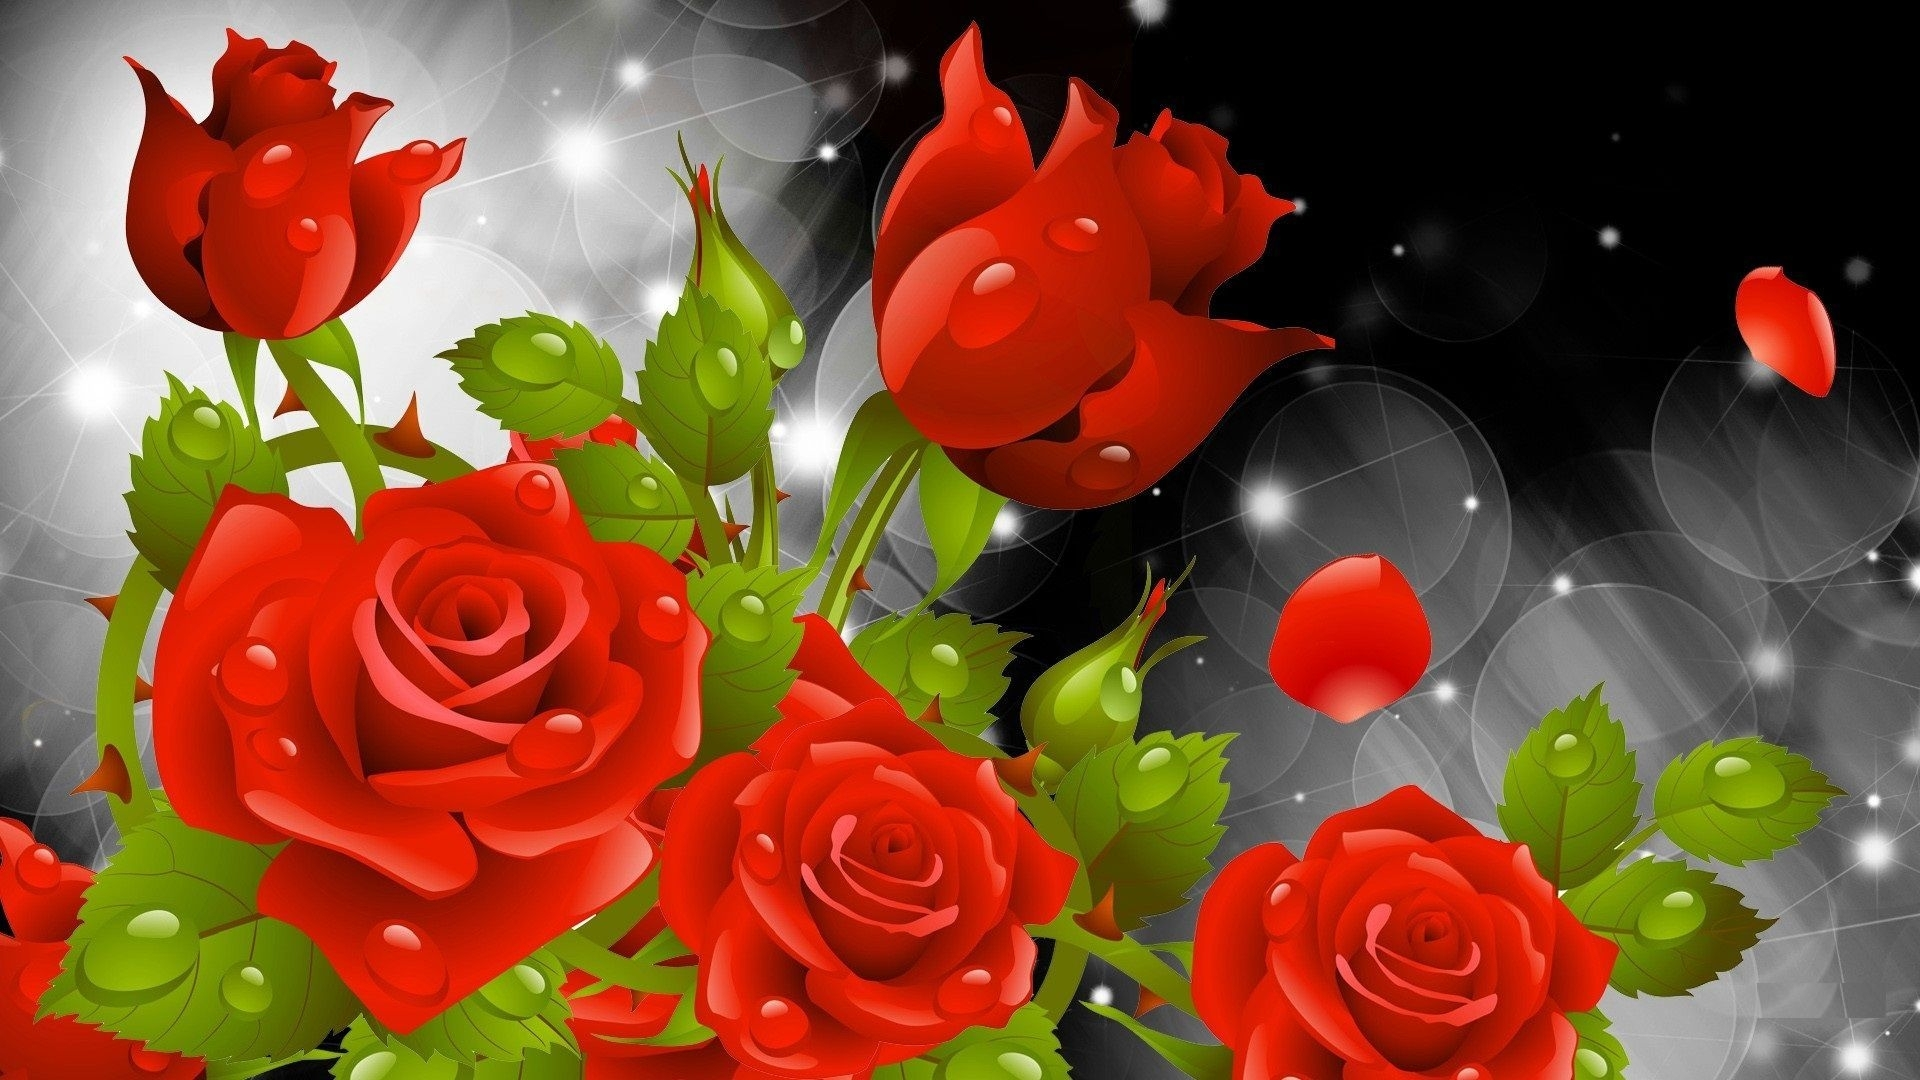 rose flowers hd wallpaper for desktop pics photos roses of androids